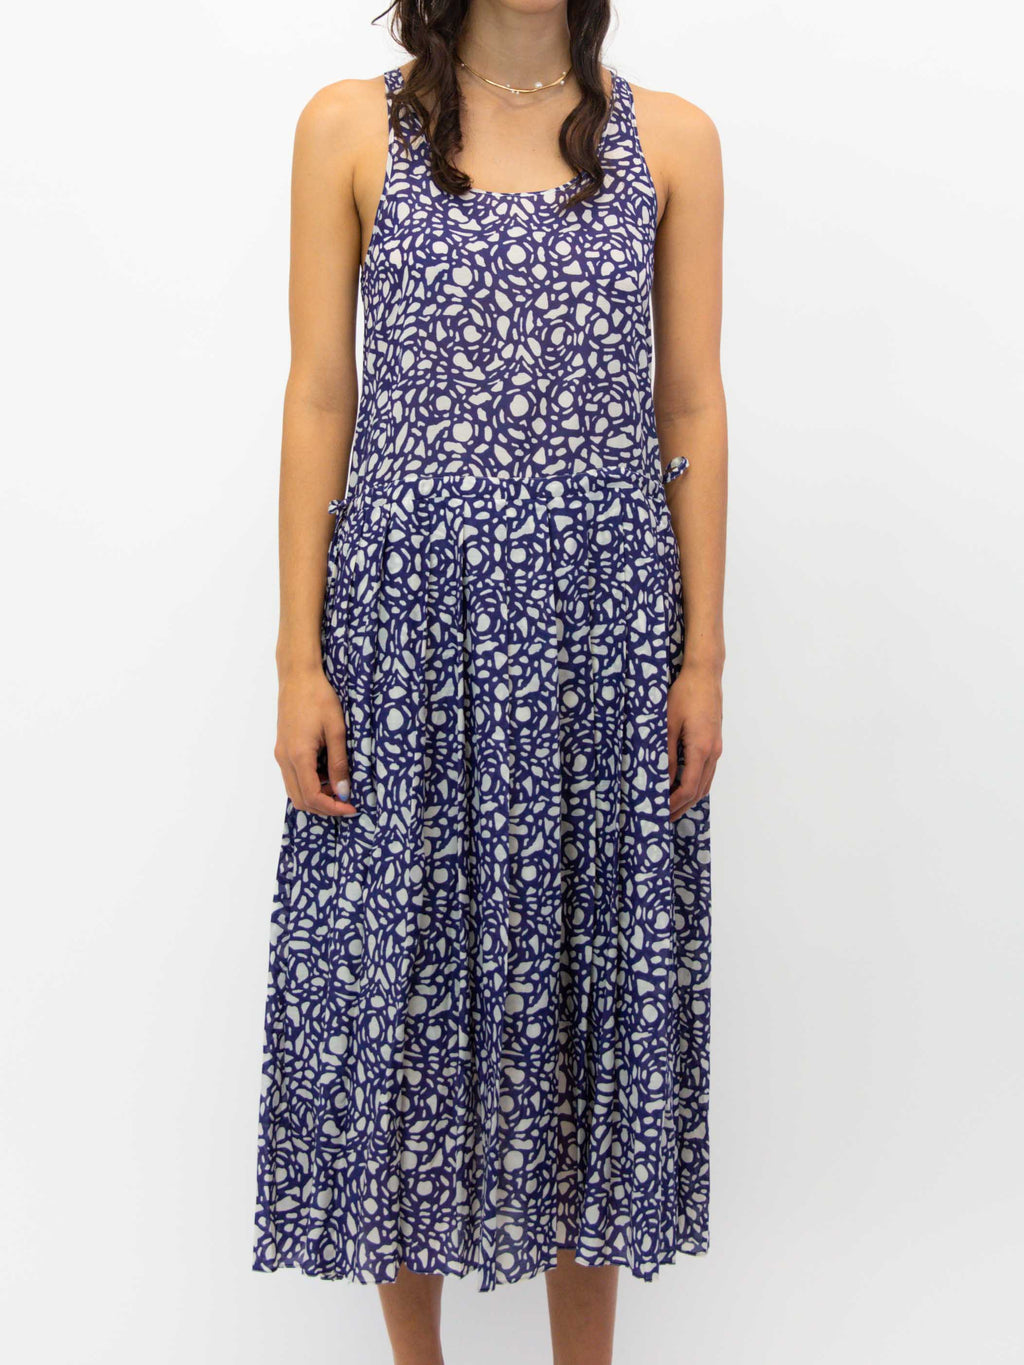 SARA LANZI Tank Top Pleated Dress - Snakestone Blue